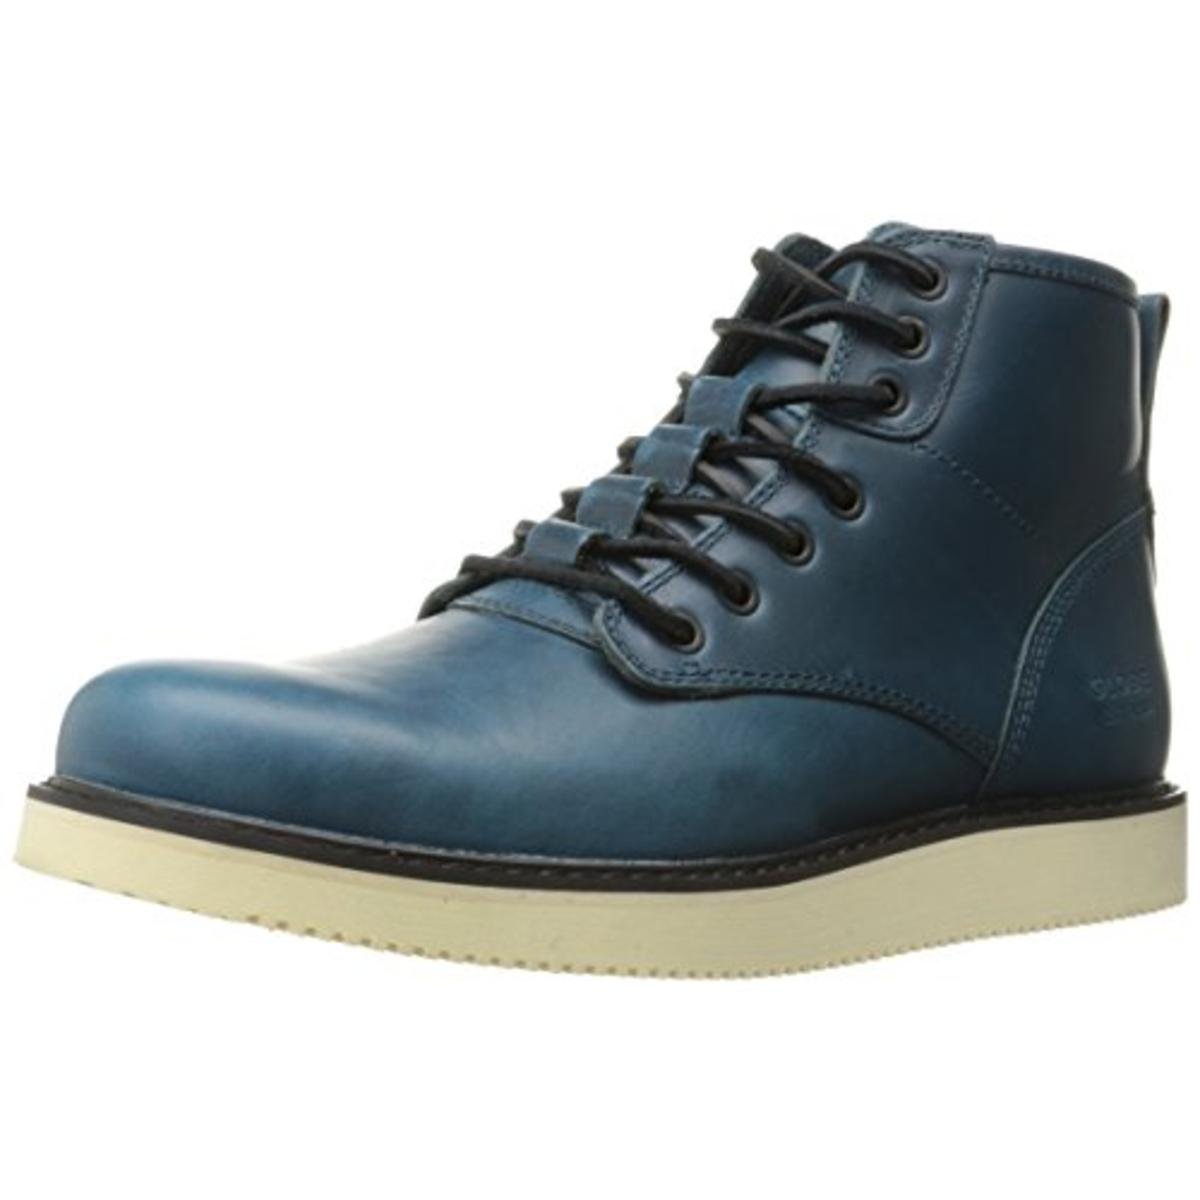 Click here to buy Globe Mens Nomad Leather Canvas Detailing Casual Boots by Globe.